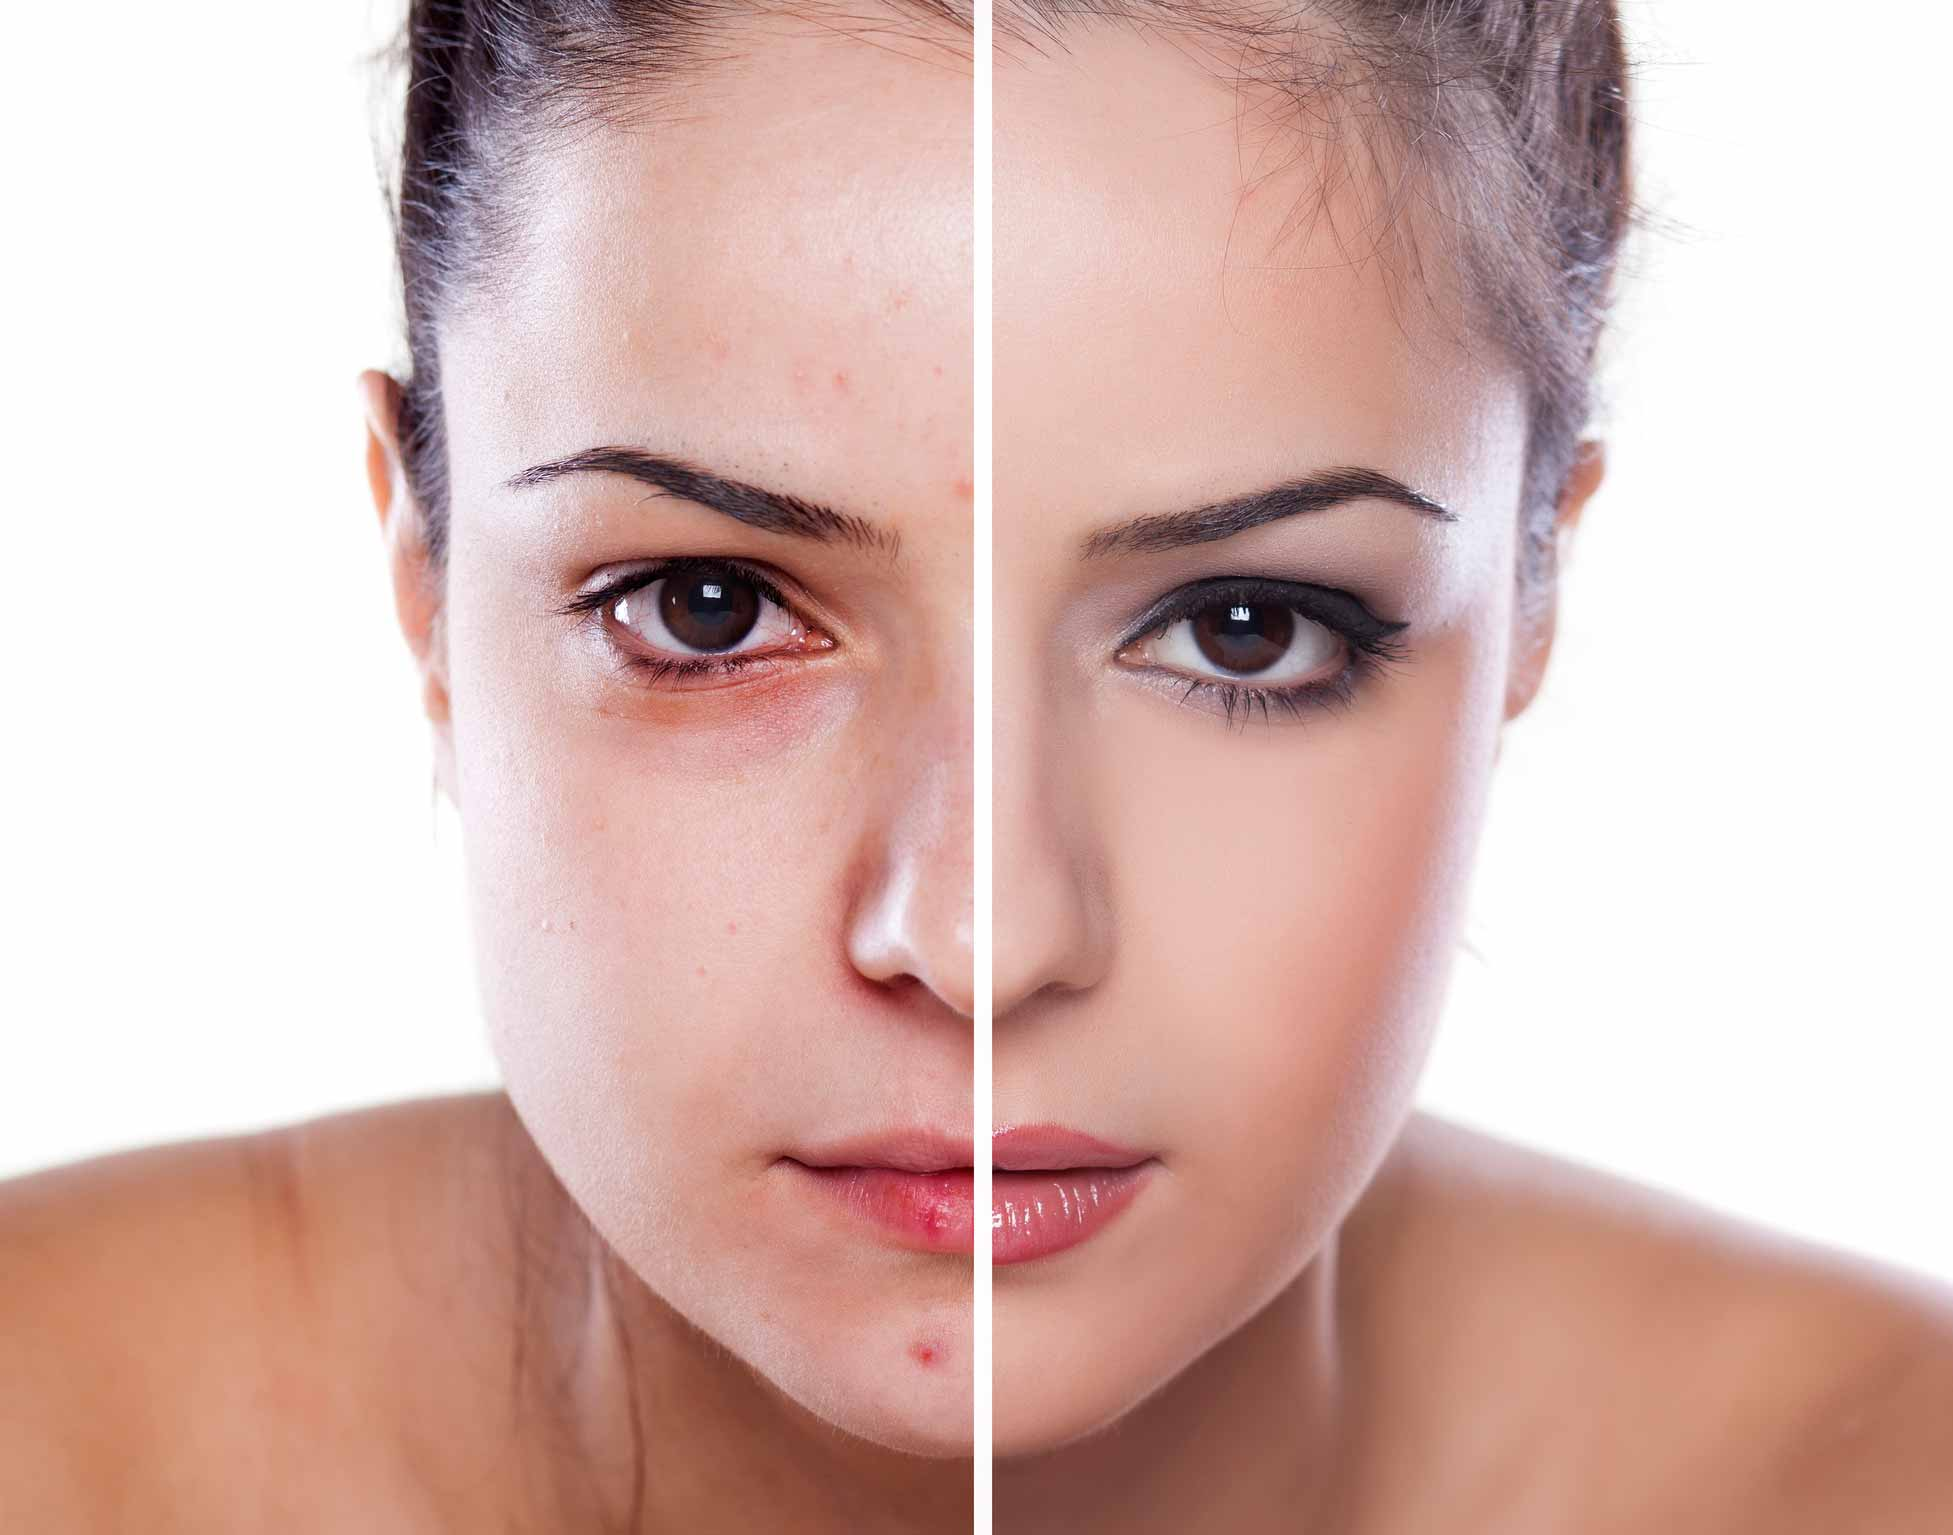 The Revanesse Versa filler is a hyaluronic acid filler used by the professionals at Seriously Skin Cosmetic and Laser Medicine for concerns with an aging face.